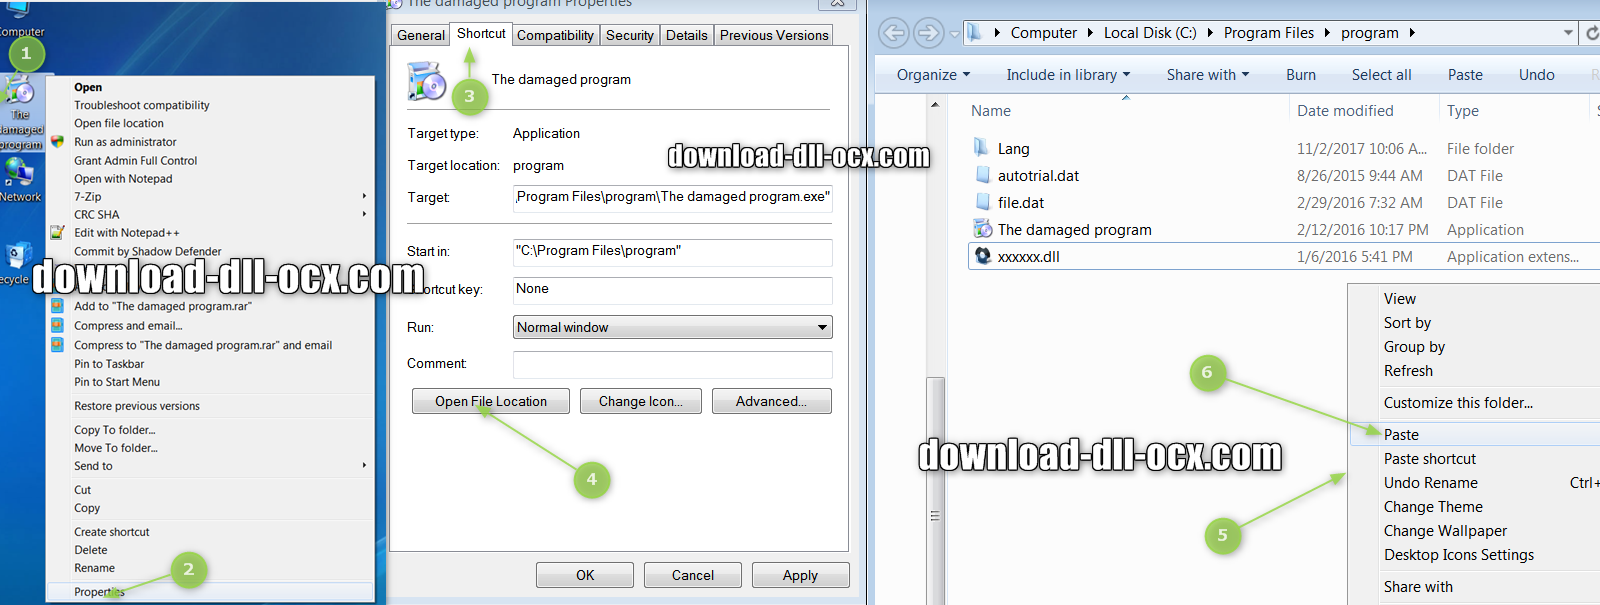 how to install libgimpbase-2.0-0.dll file? for fix missing